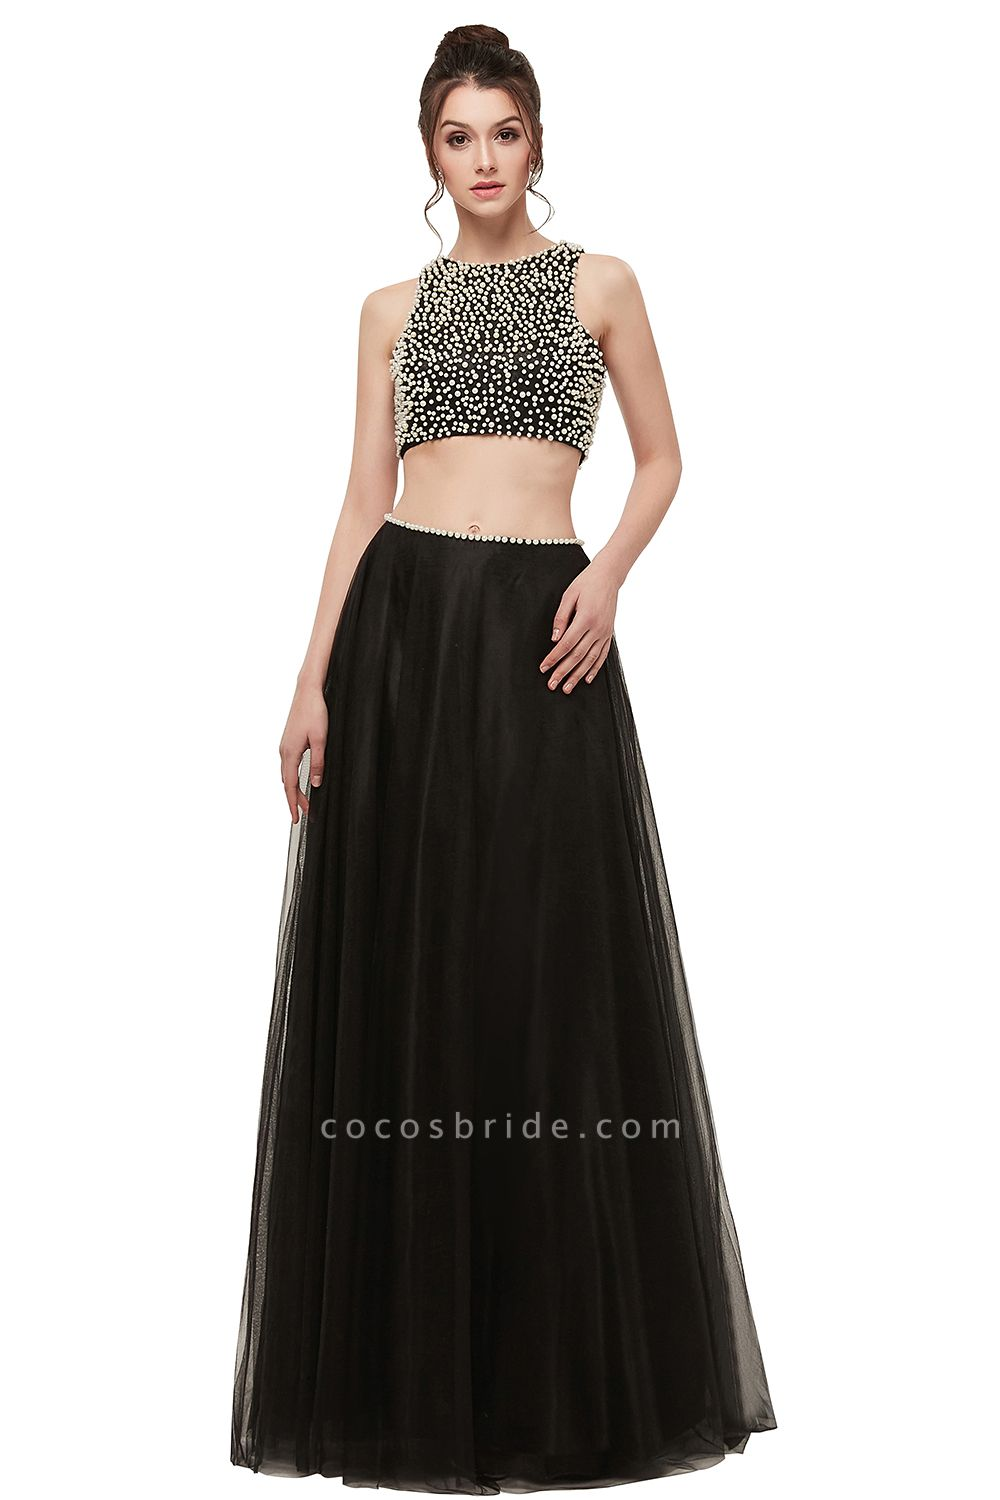 Wonderful Jewel Tulle Two Pieces Evening Dress